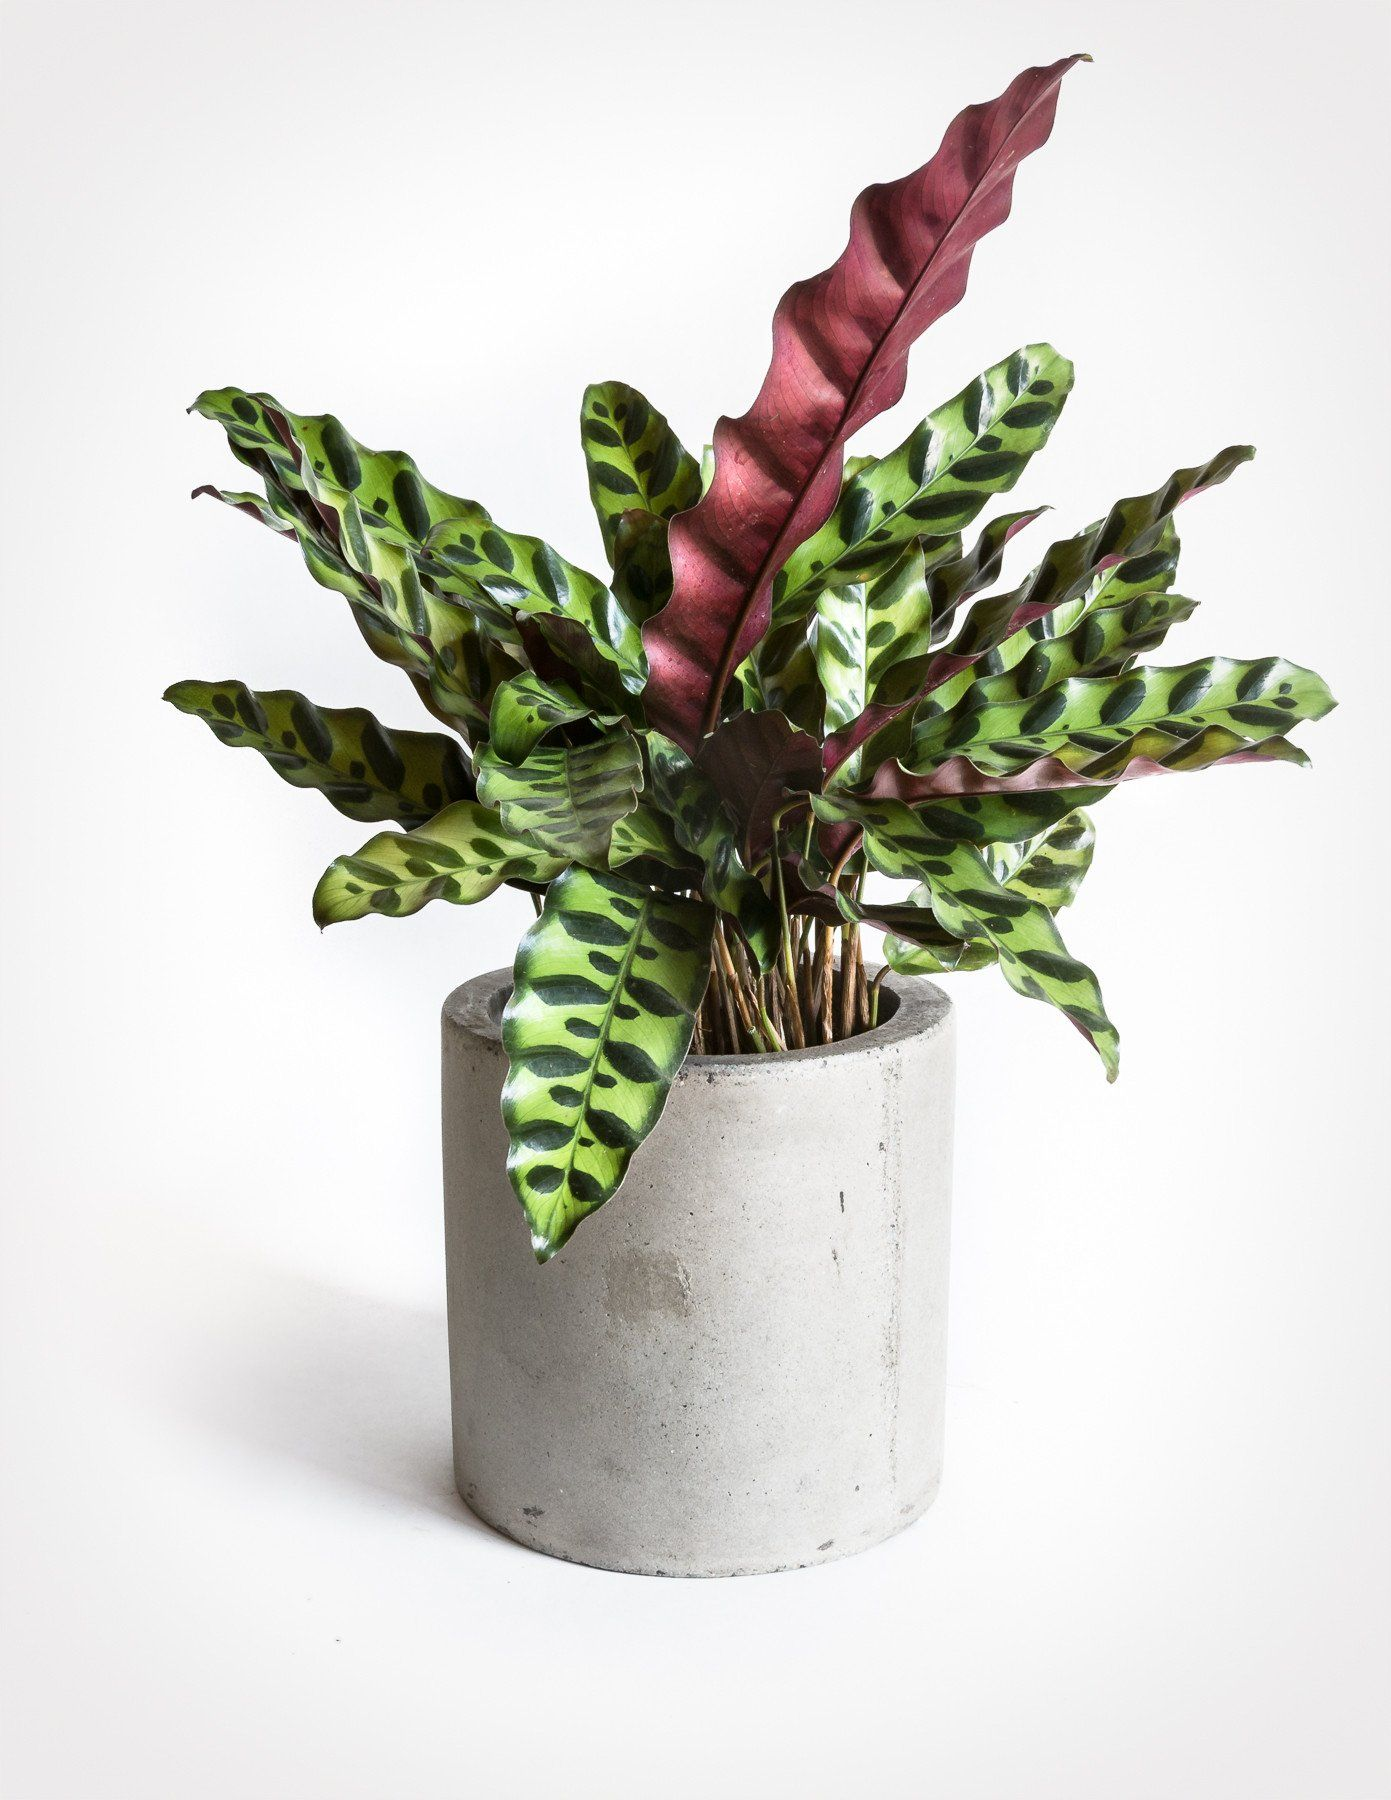 Plante D Interieur Villaverde The Pinterest Plant Trend That 39s Anything But Boring